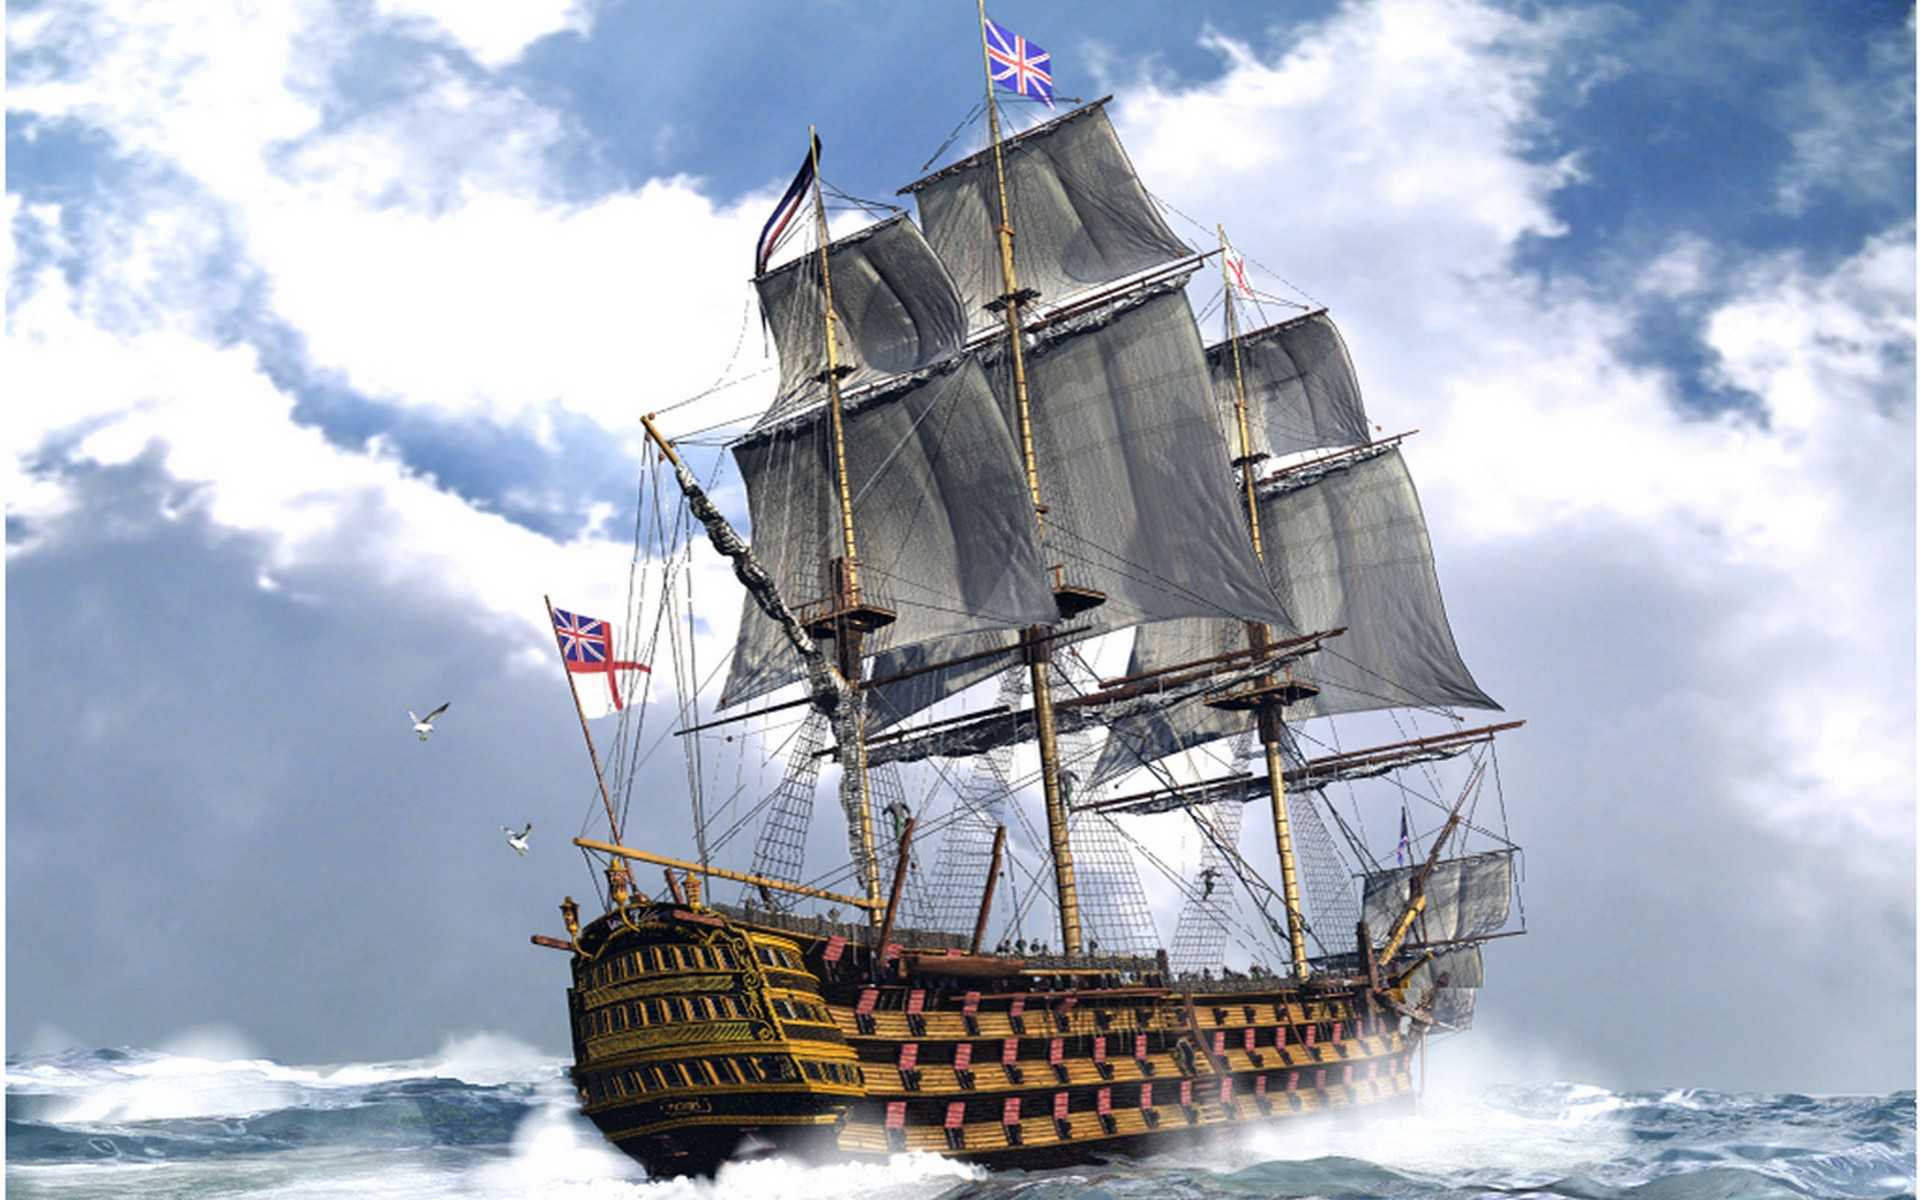 Ocean ships britain flags cannons british sail ship sails free ...